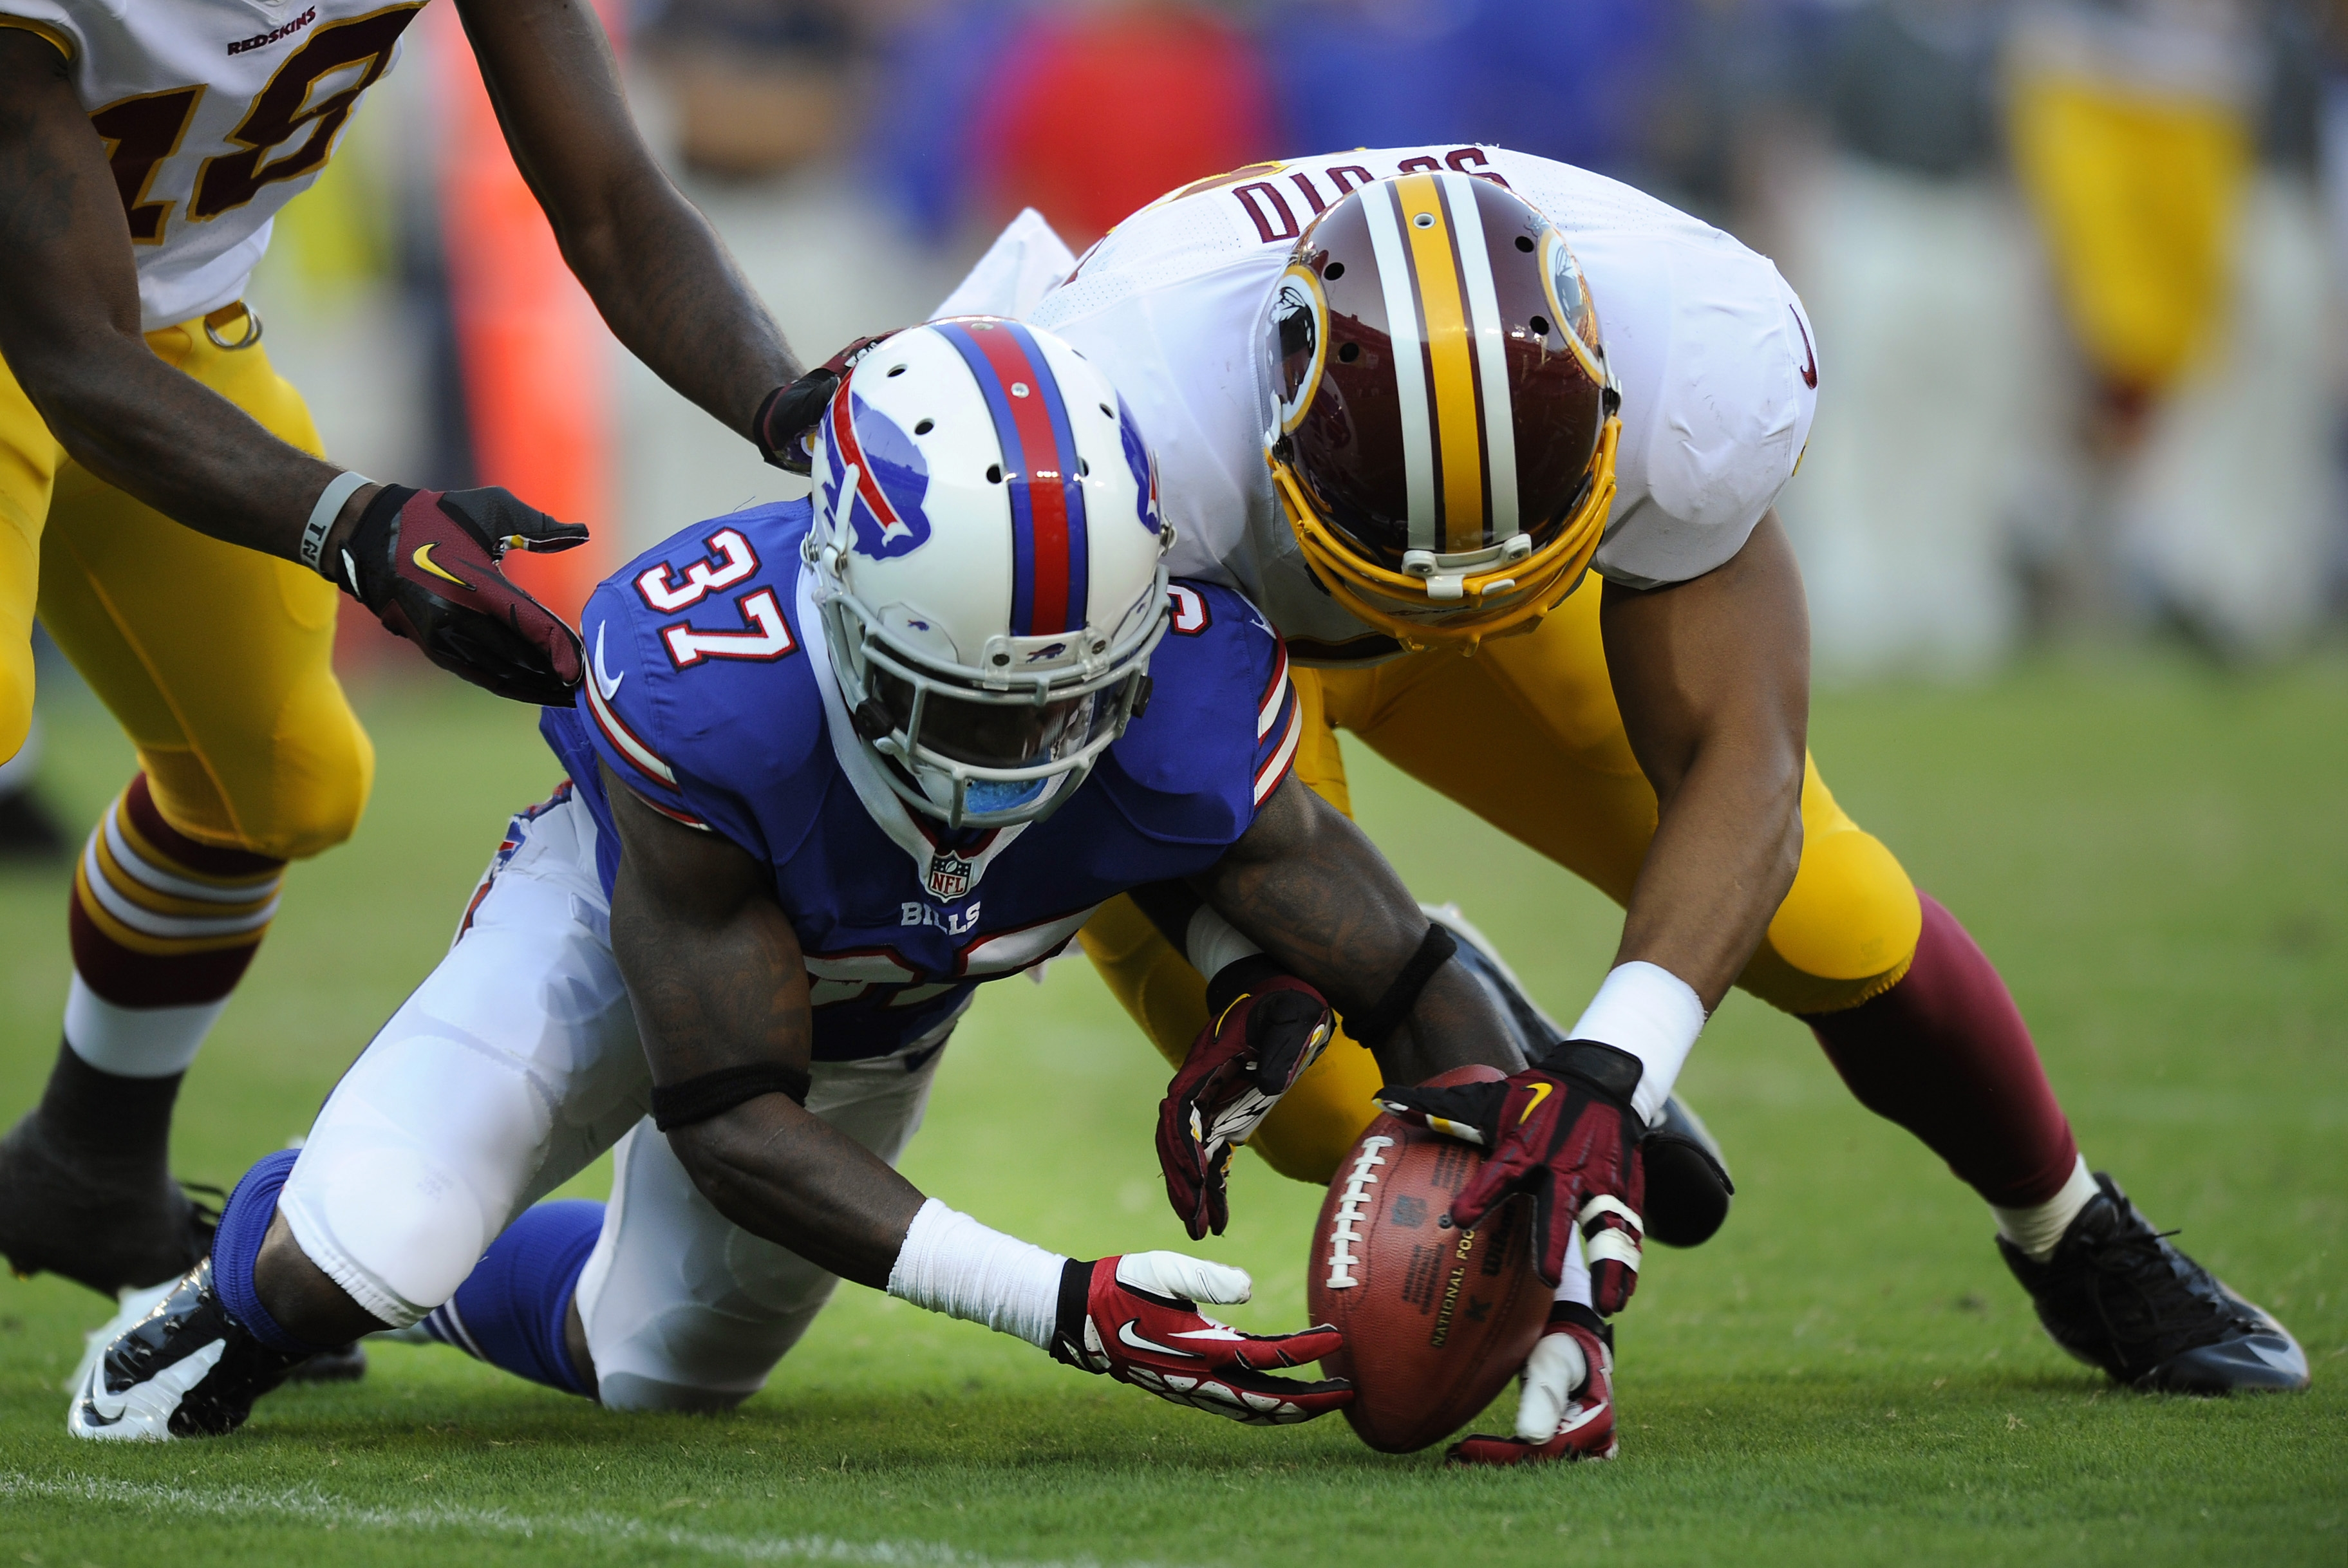 Bills defensive back Nickell Robey fumbles a punt return as he is pressured by Washington Redskins linebacker Vic So'oto in the second half of Saturday night's preseason game.